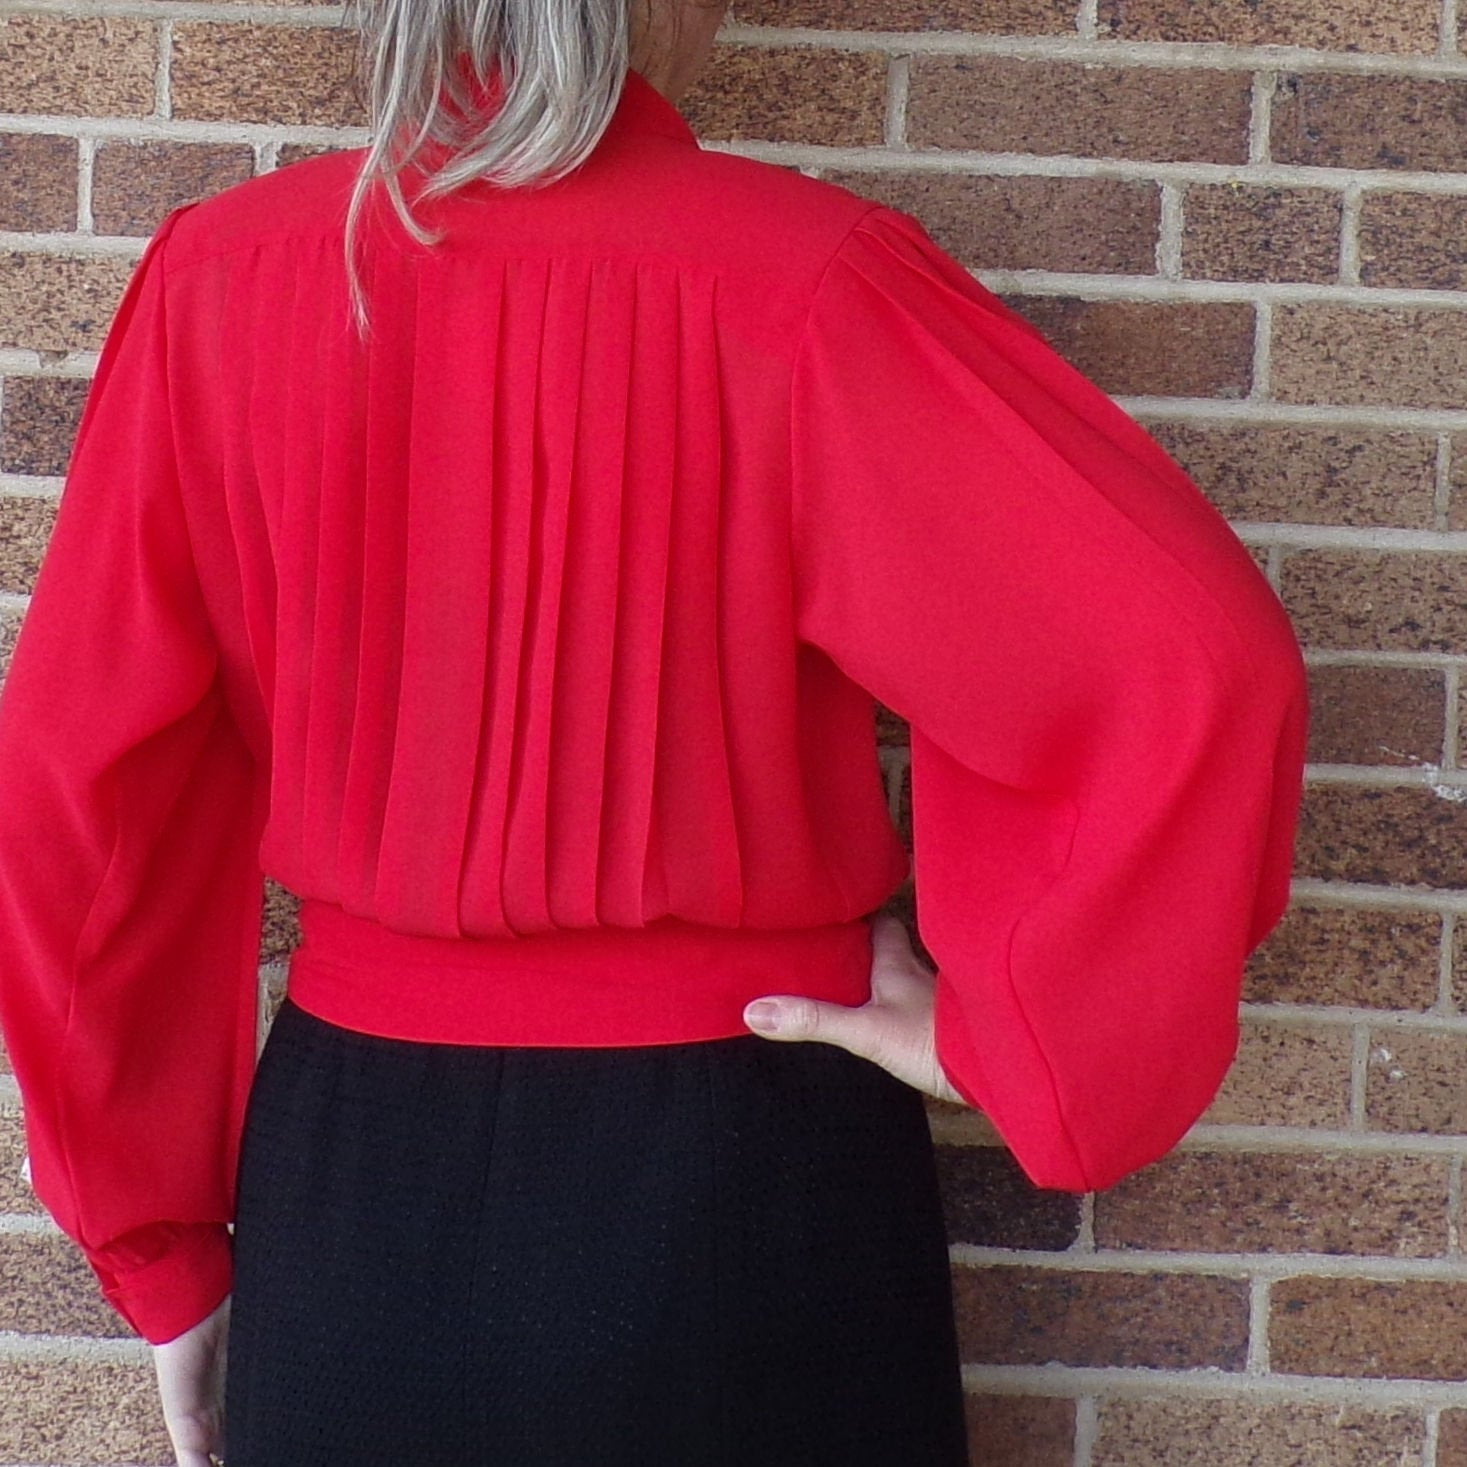 RED 1980's NICOLA BLOUSE pleated with bishop sleeves S M (K5)